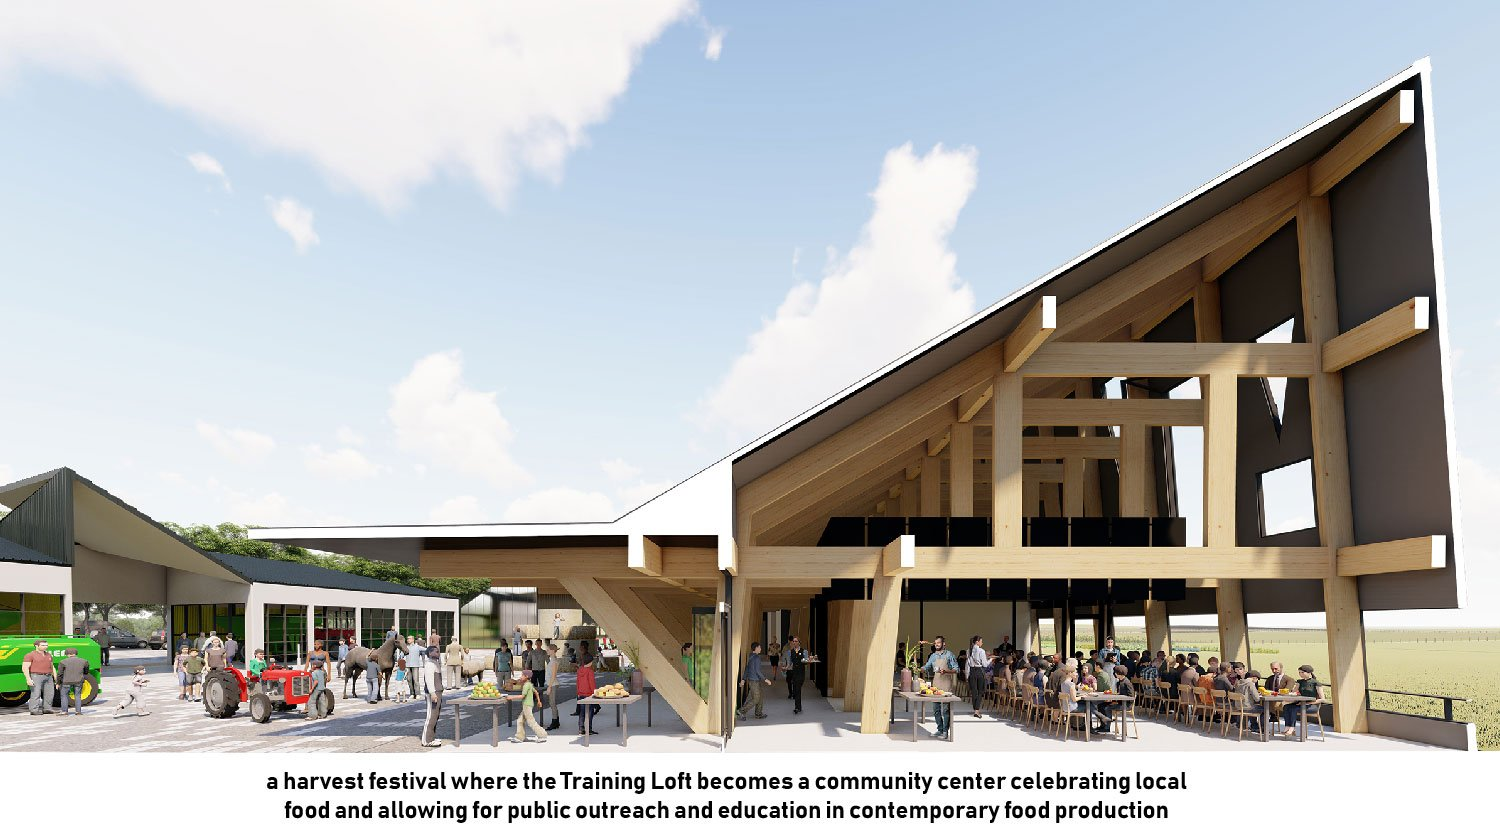 The classroom and event space hosts community gatherings promoting food literacy. University of Arkansas Community Design Center}